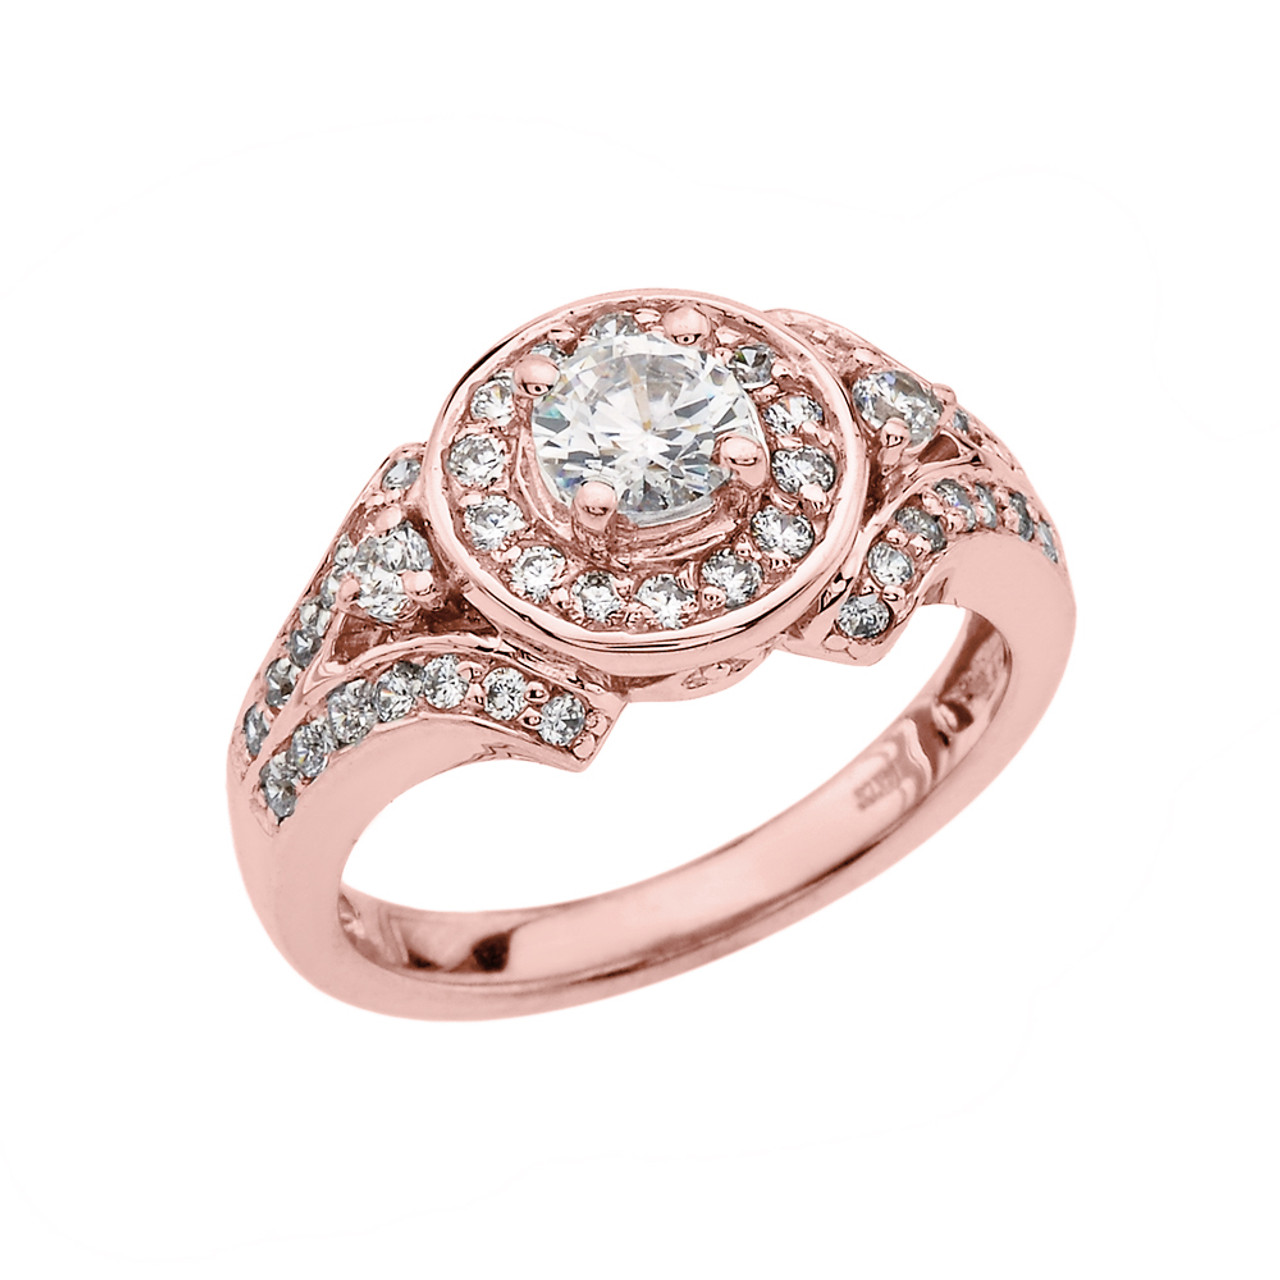 rose gold engagement proposal ring with cubic zirconia center stone. Black Bedroom Furniture Sets. Home Design Ideas